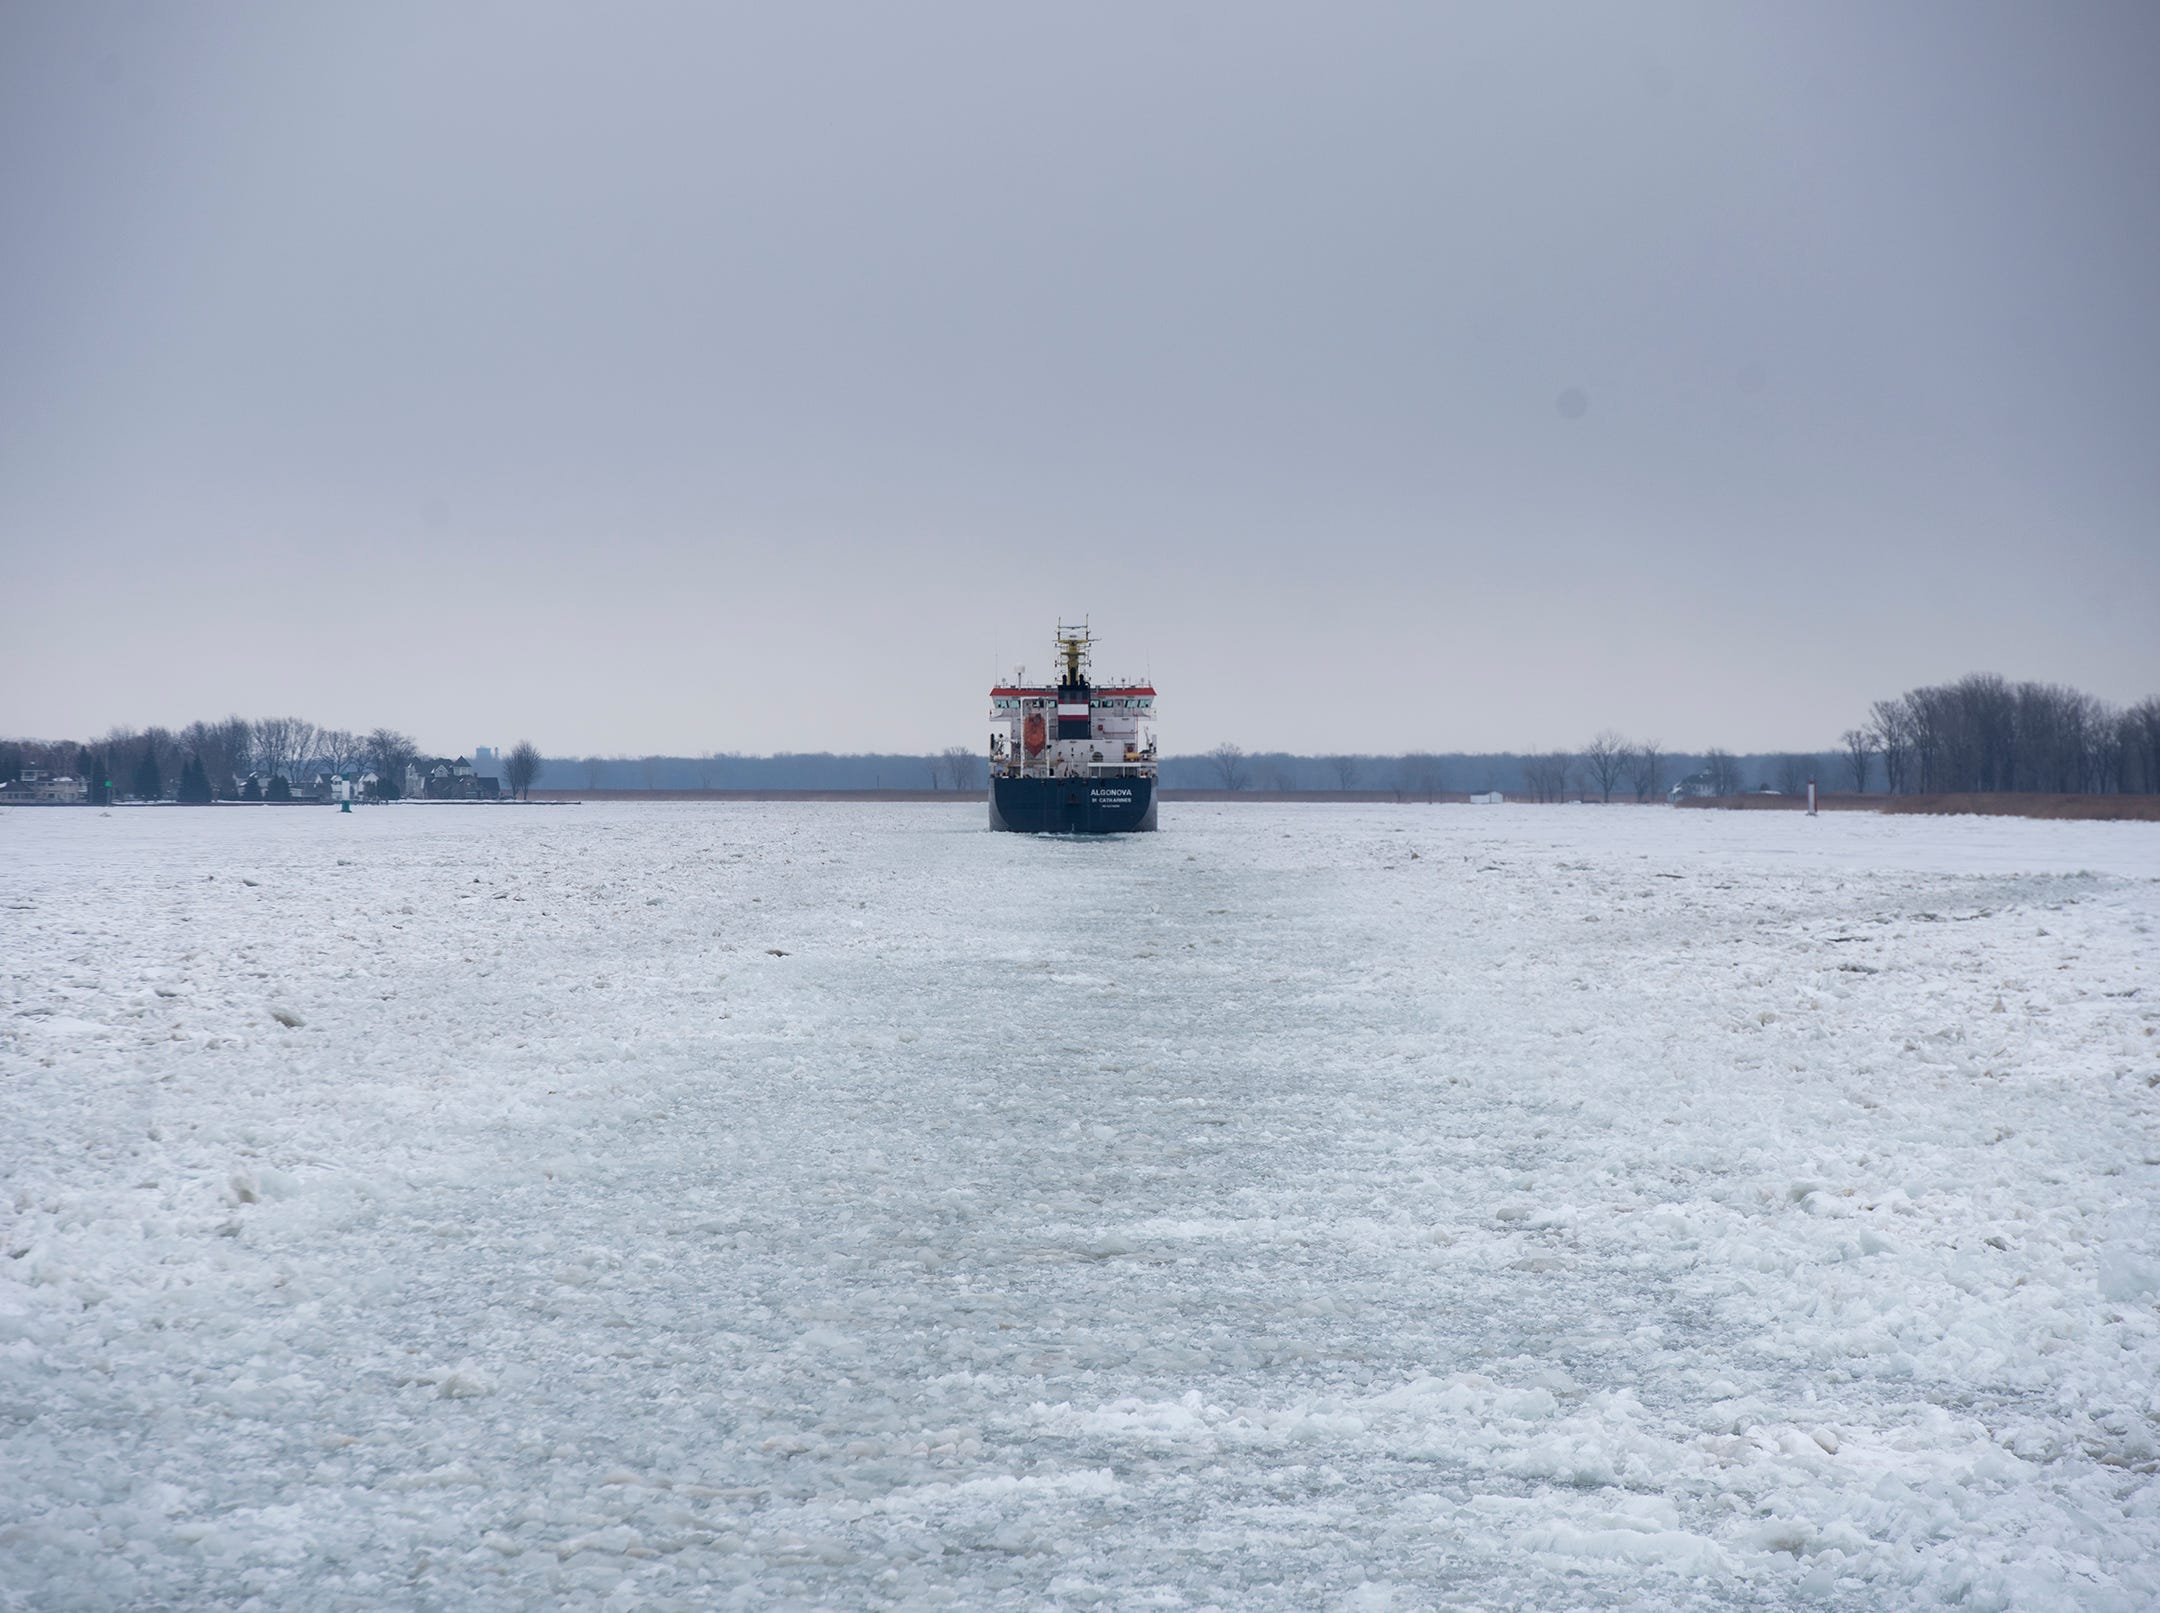 The USCGC Hollyhock follows behind the Algonova as it assists the USCGC Bristol Bay in escorting the nearly 430-foot freighter north through ice on the St. Clair River. The Bristol Bay lead the way, while the Hollyhock brought up the rear. This allows the Hollyhock to go along and free the freighter if it became stuck, which saves time and reduces the risk of either cutter becoming stuck.